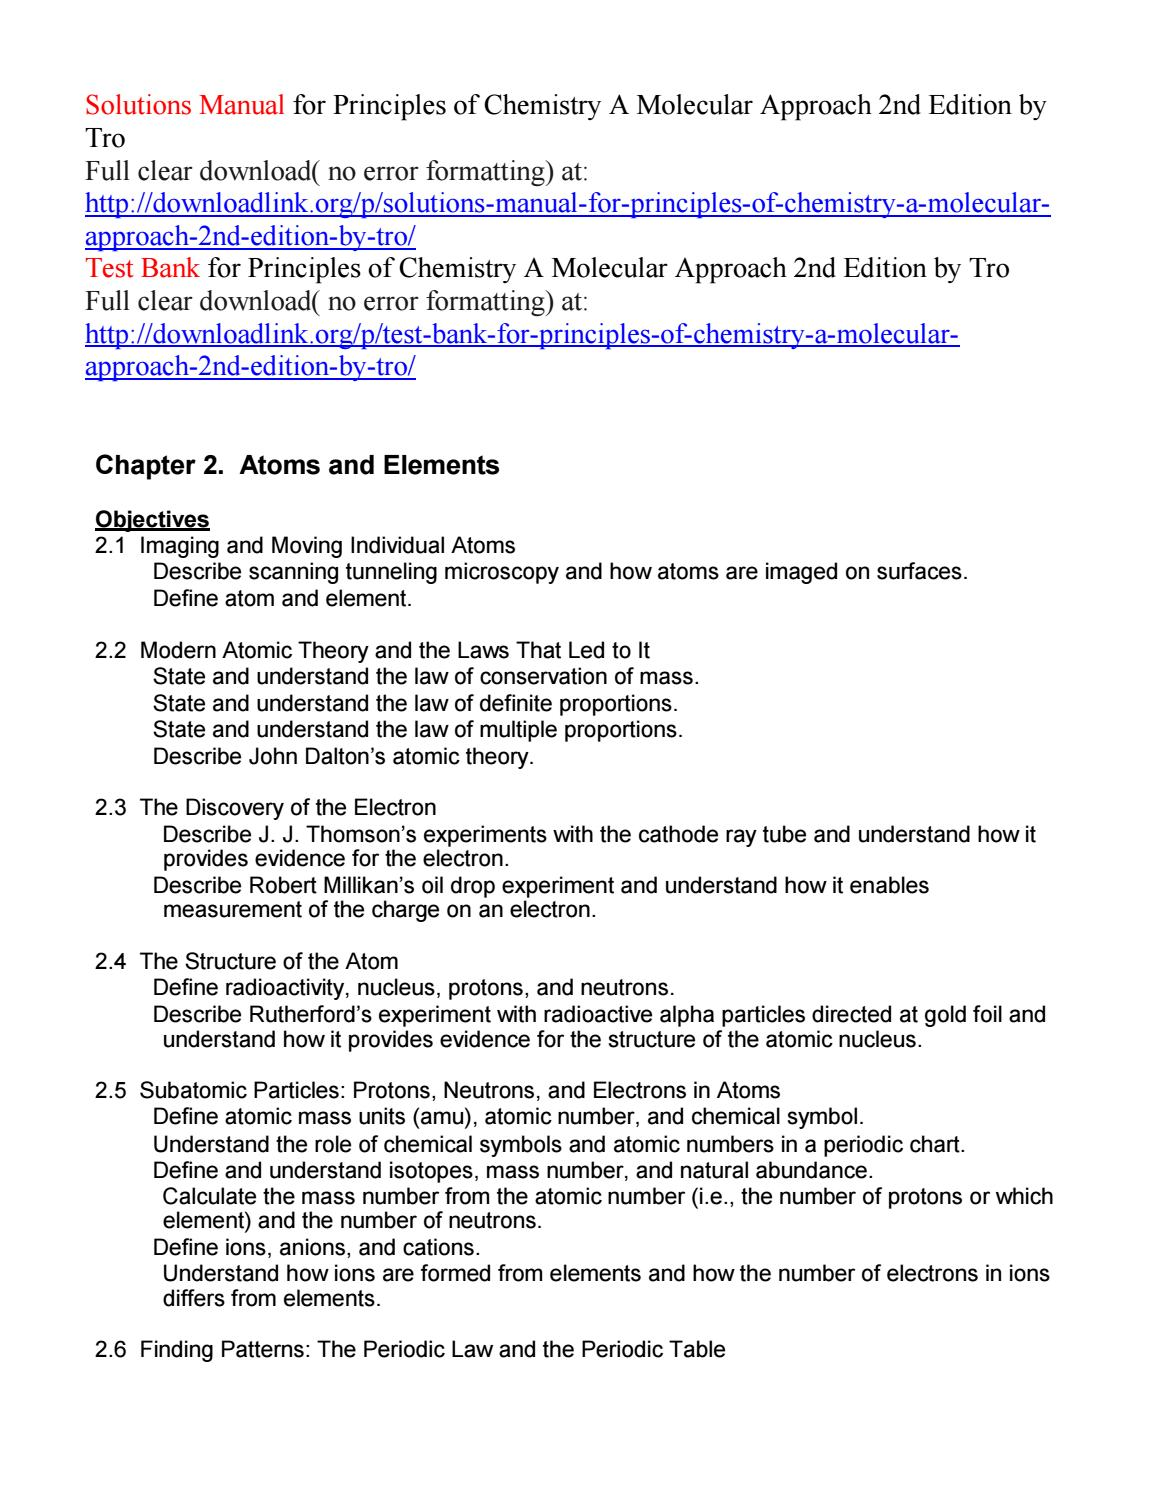 Solutions manual for principles of chemistry a molecular approach 2nd  edition by tro by Amelia1827 - issuu